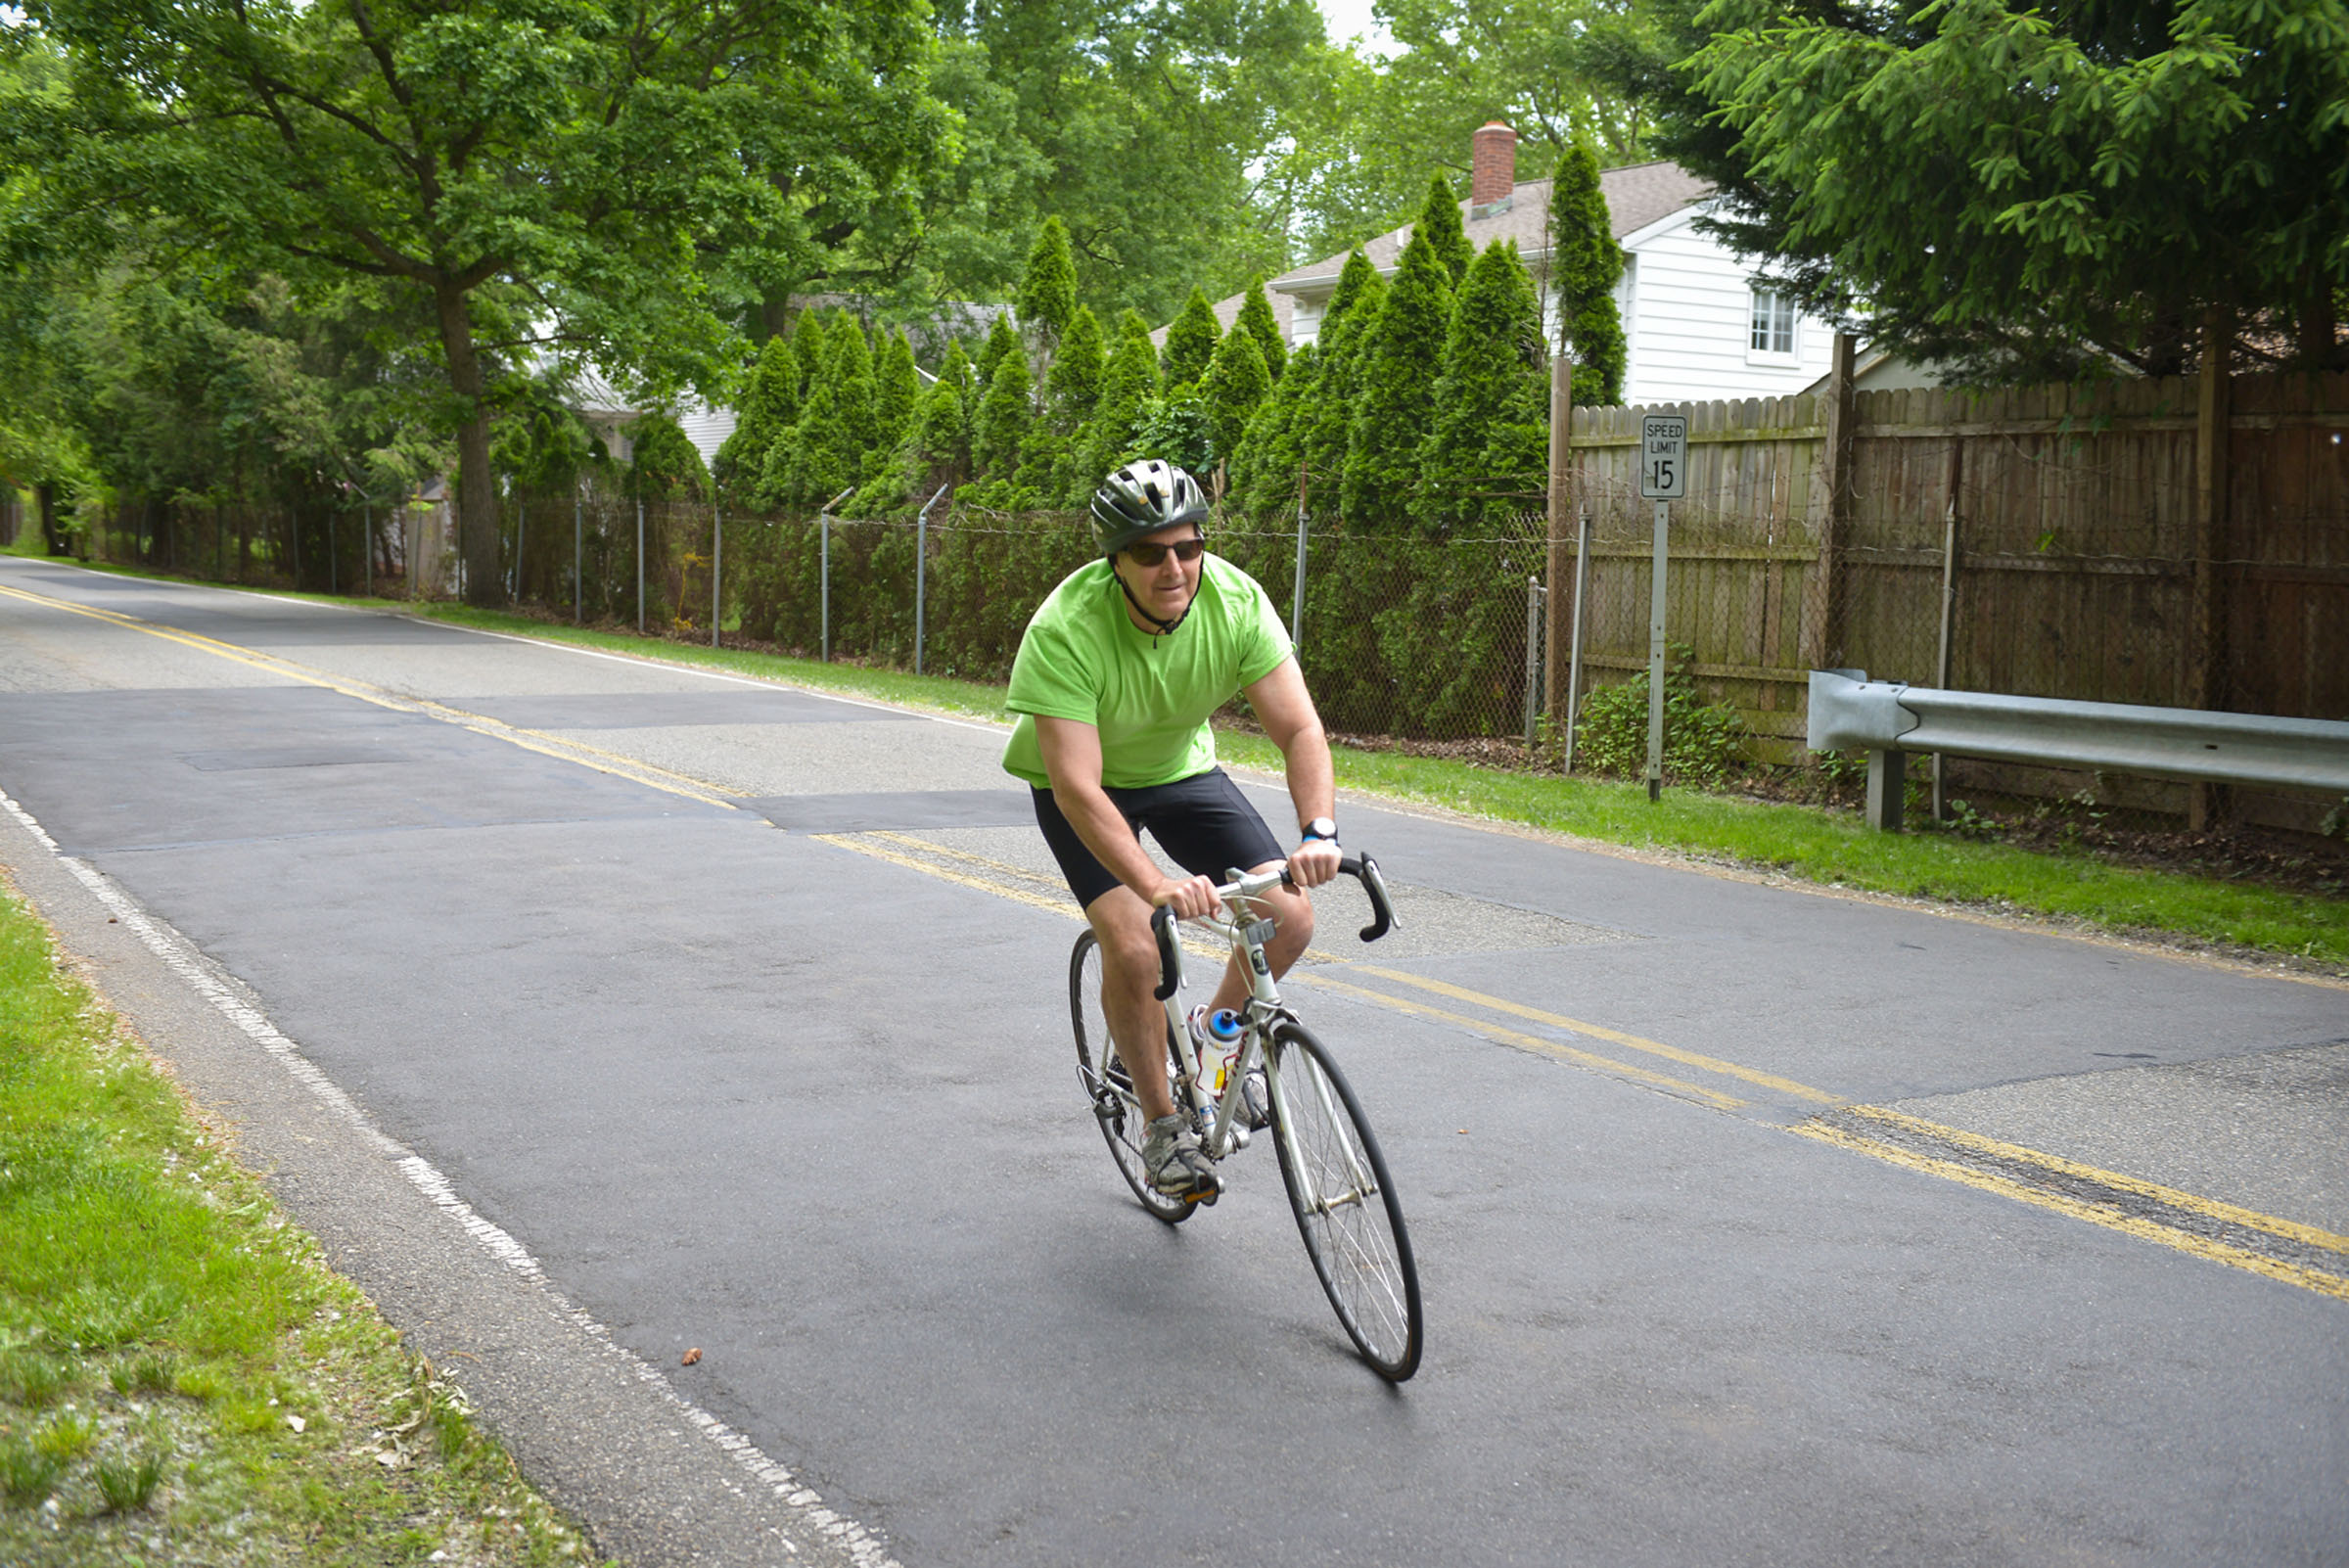 2017-06-04 GTD4A Charity Bike Ride - BCC - Paramus NJ-2355.jpg